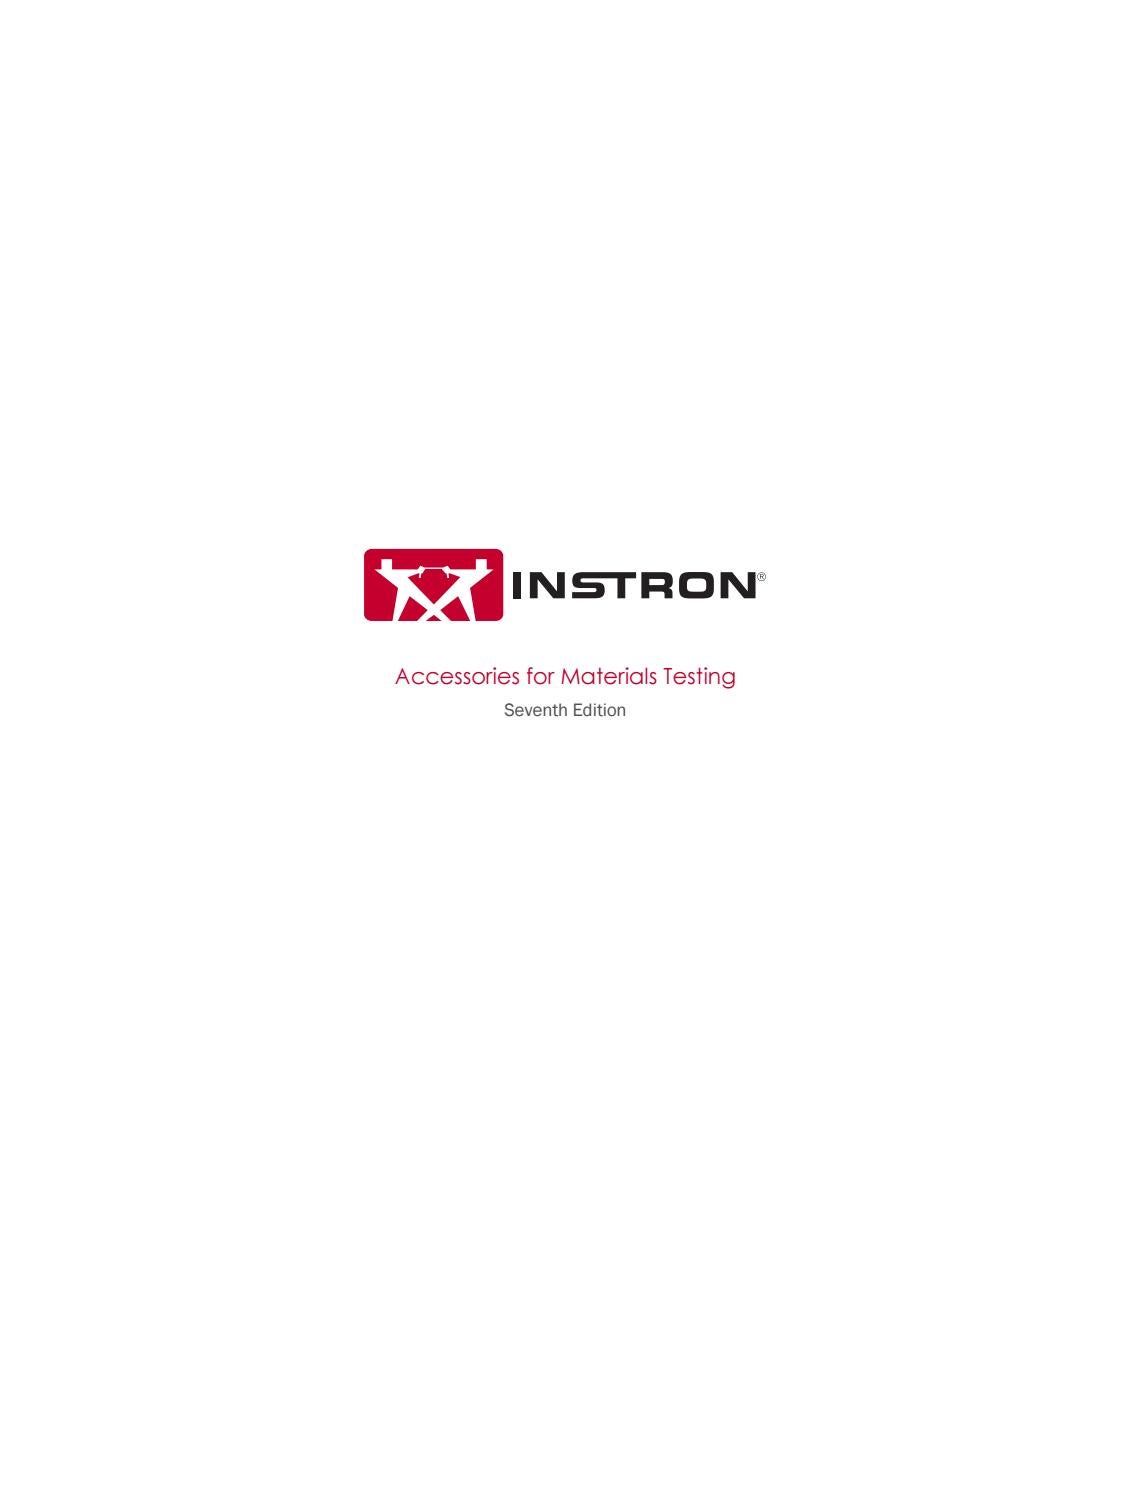 Instron - Accessories for Materials Testing - Seventh Edition by ...